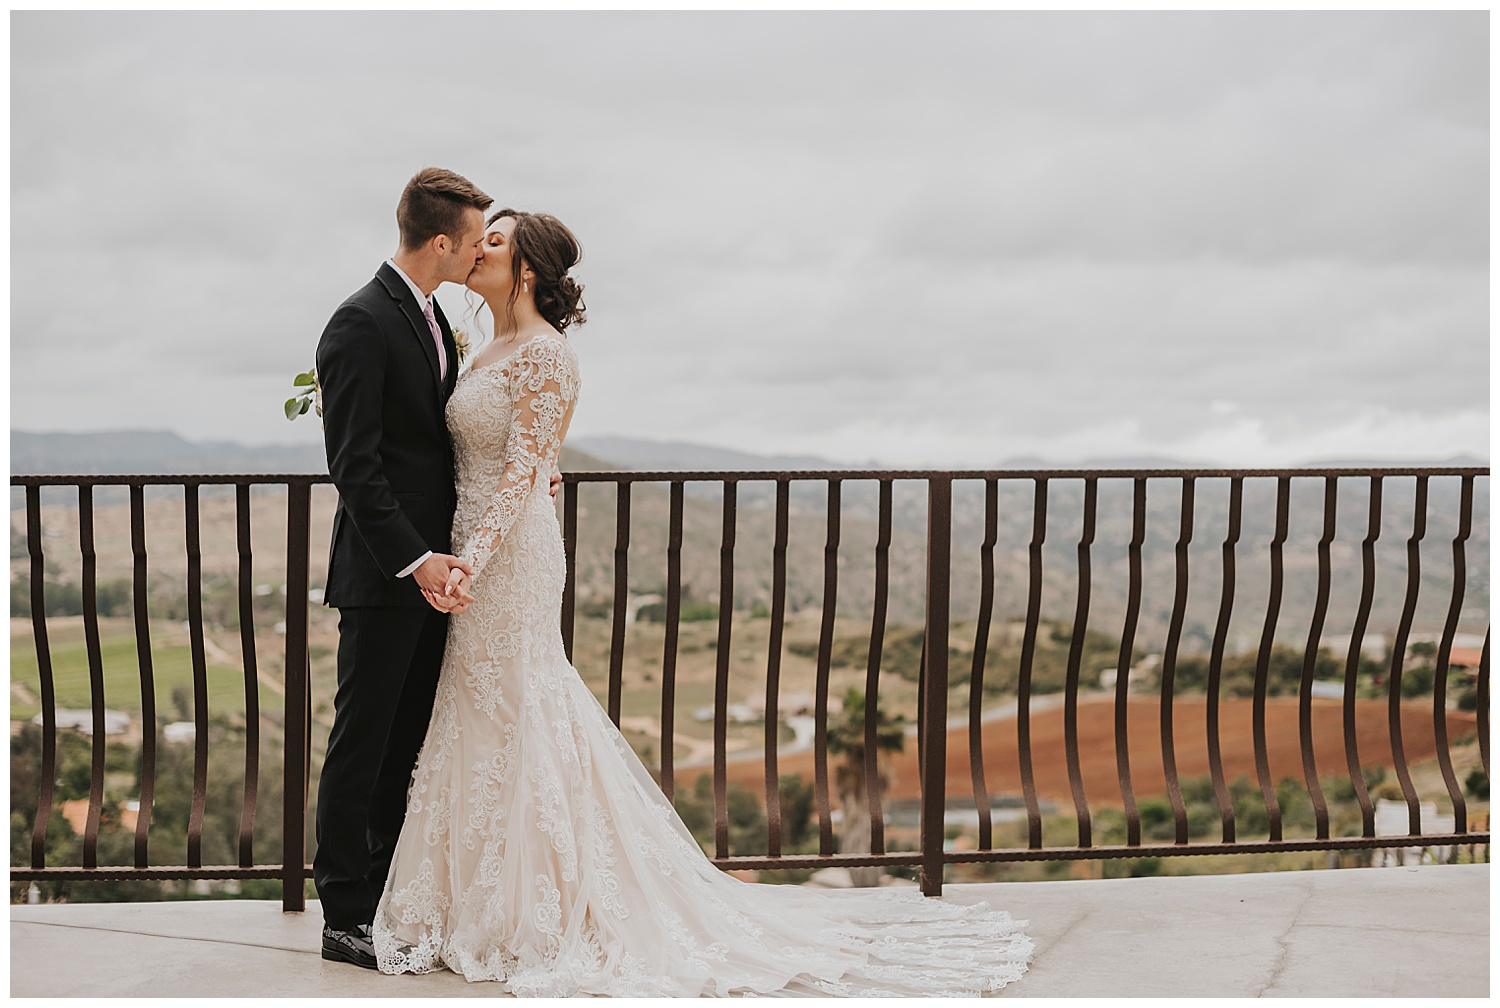 Romantic Rainy Day Wedding at Cordiano Winery